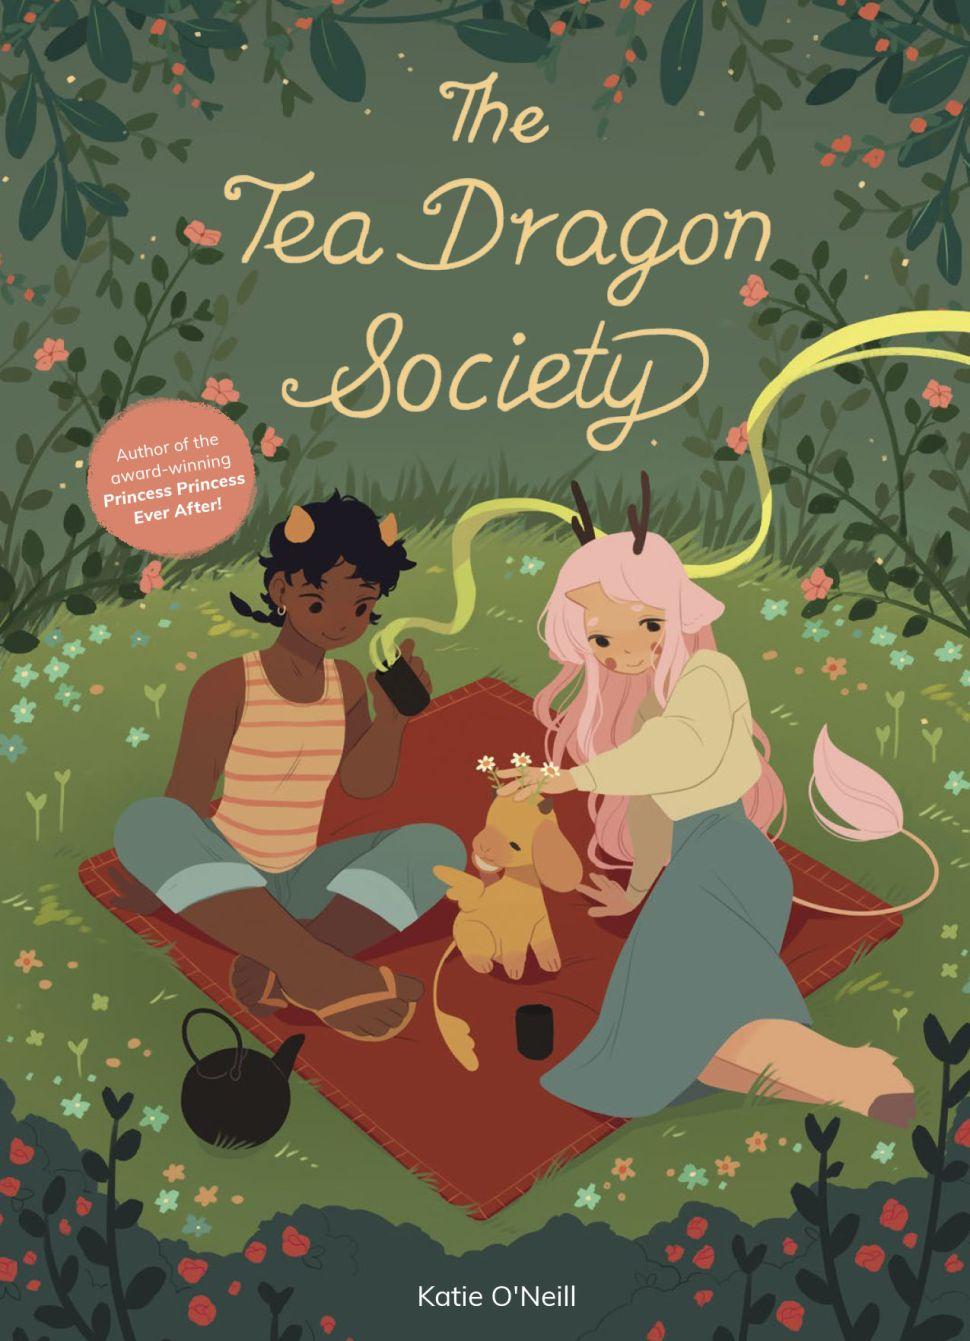 Hybrid Kid's Book and Graphic Novel 'The Tea Dragon Society' Is Designed to Soothe